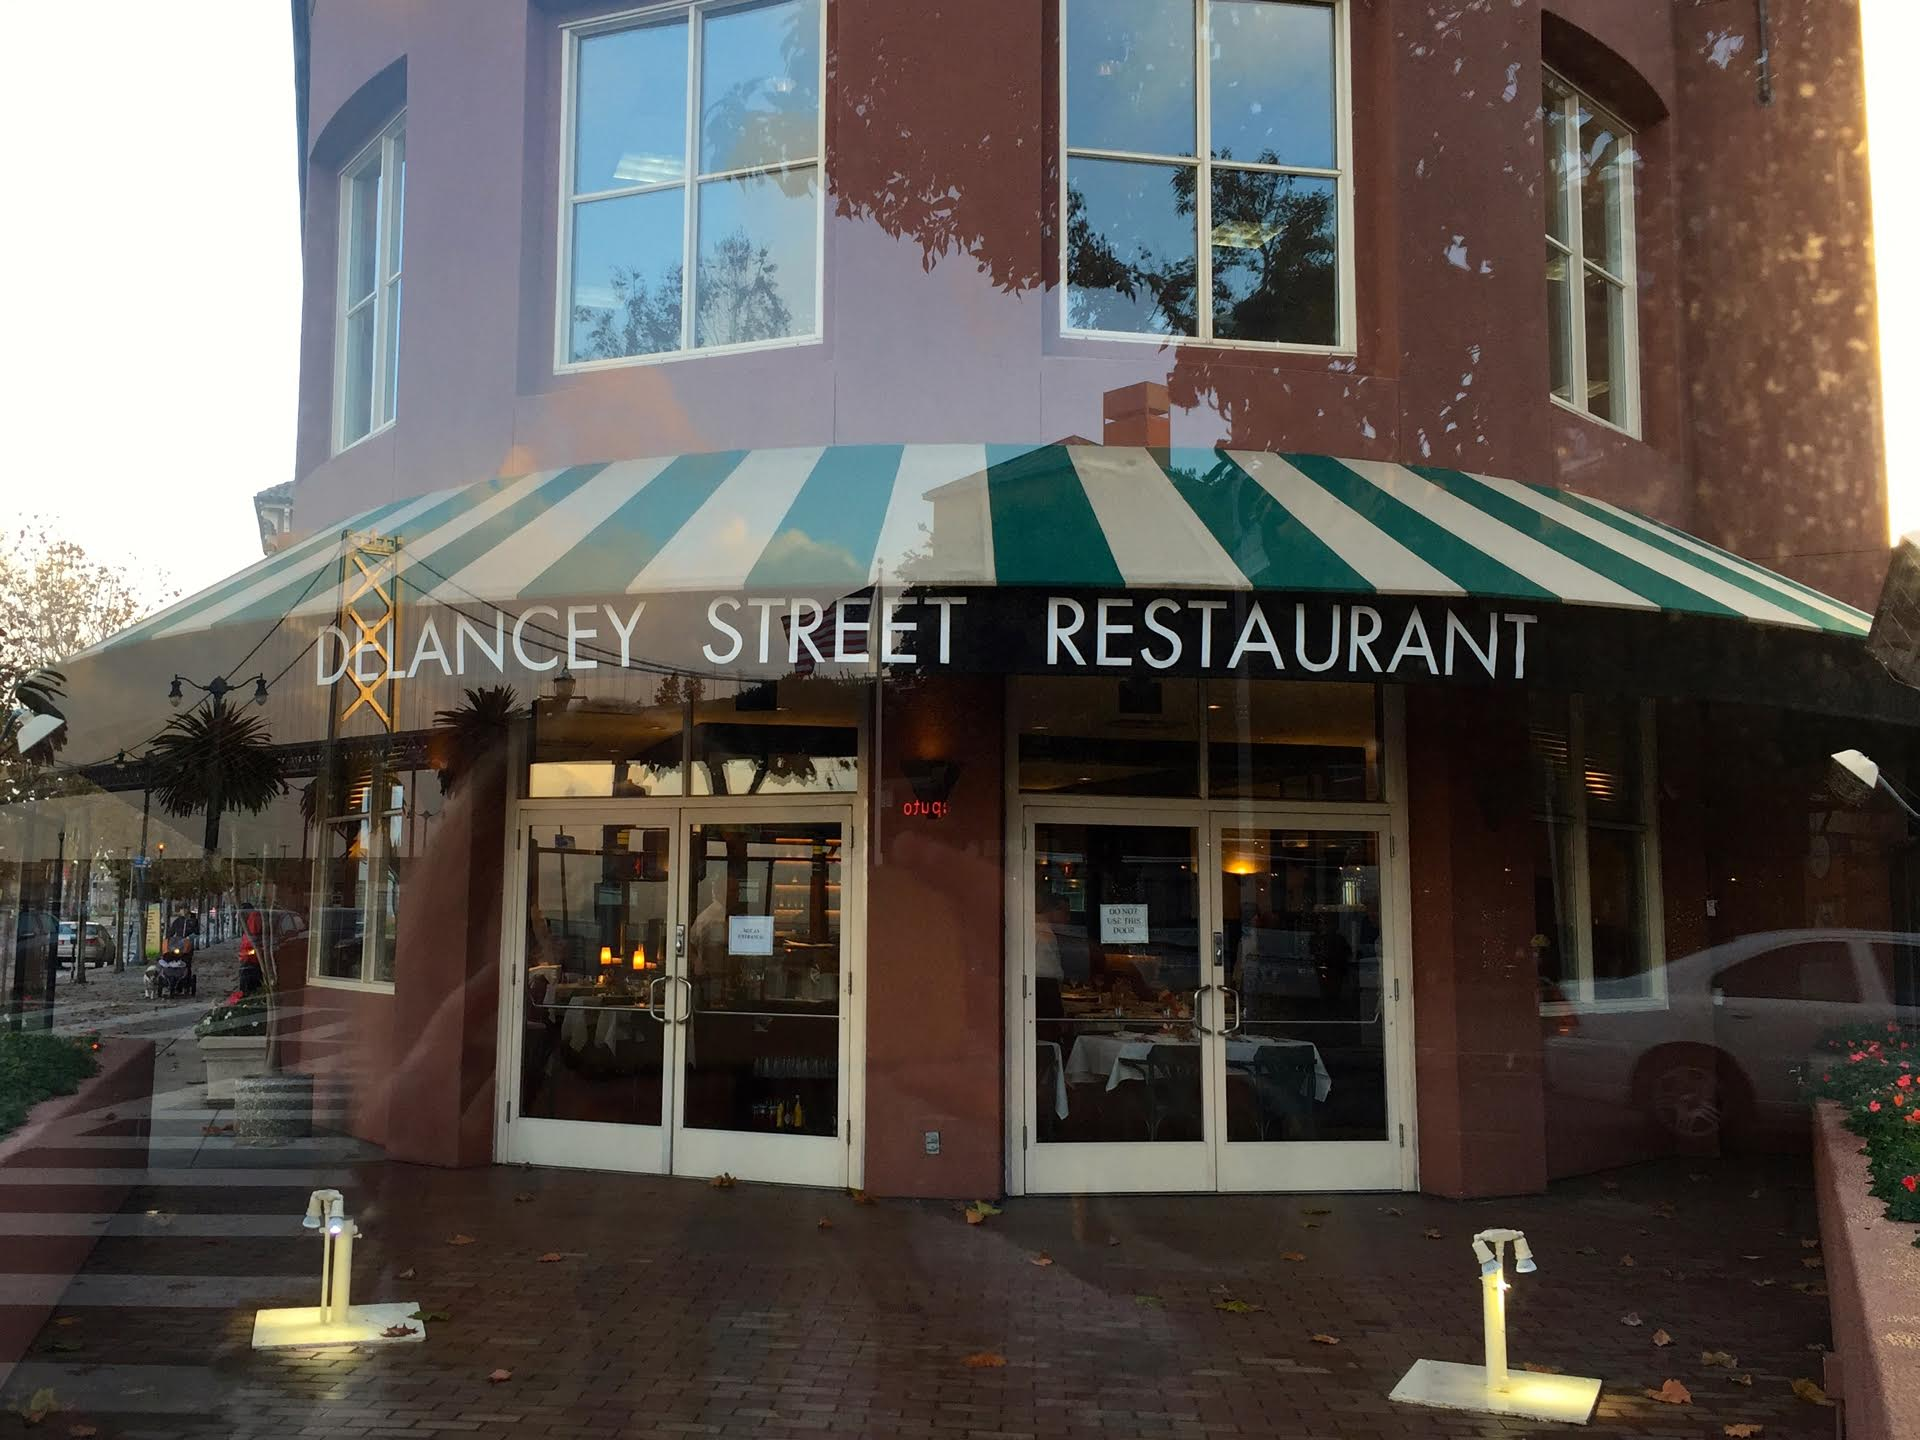 Delancey Street Restaurant on San Francisco's Embarcadero.